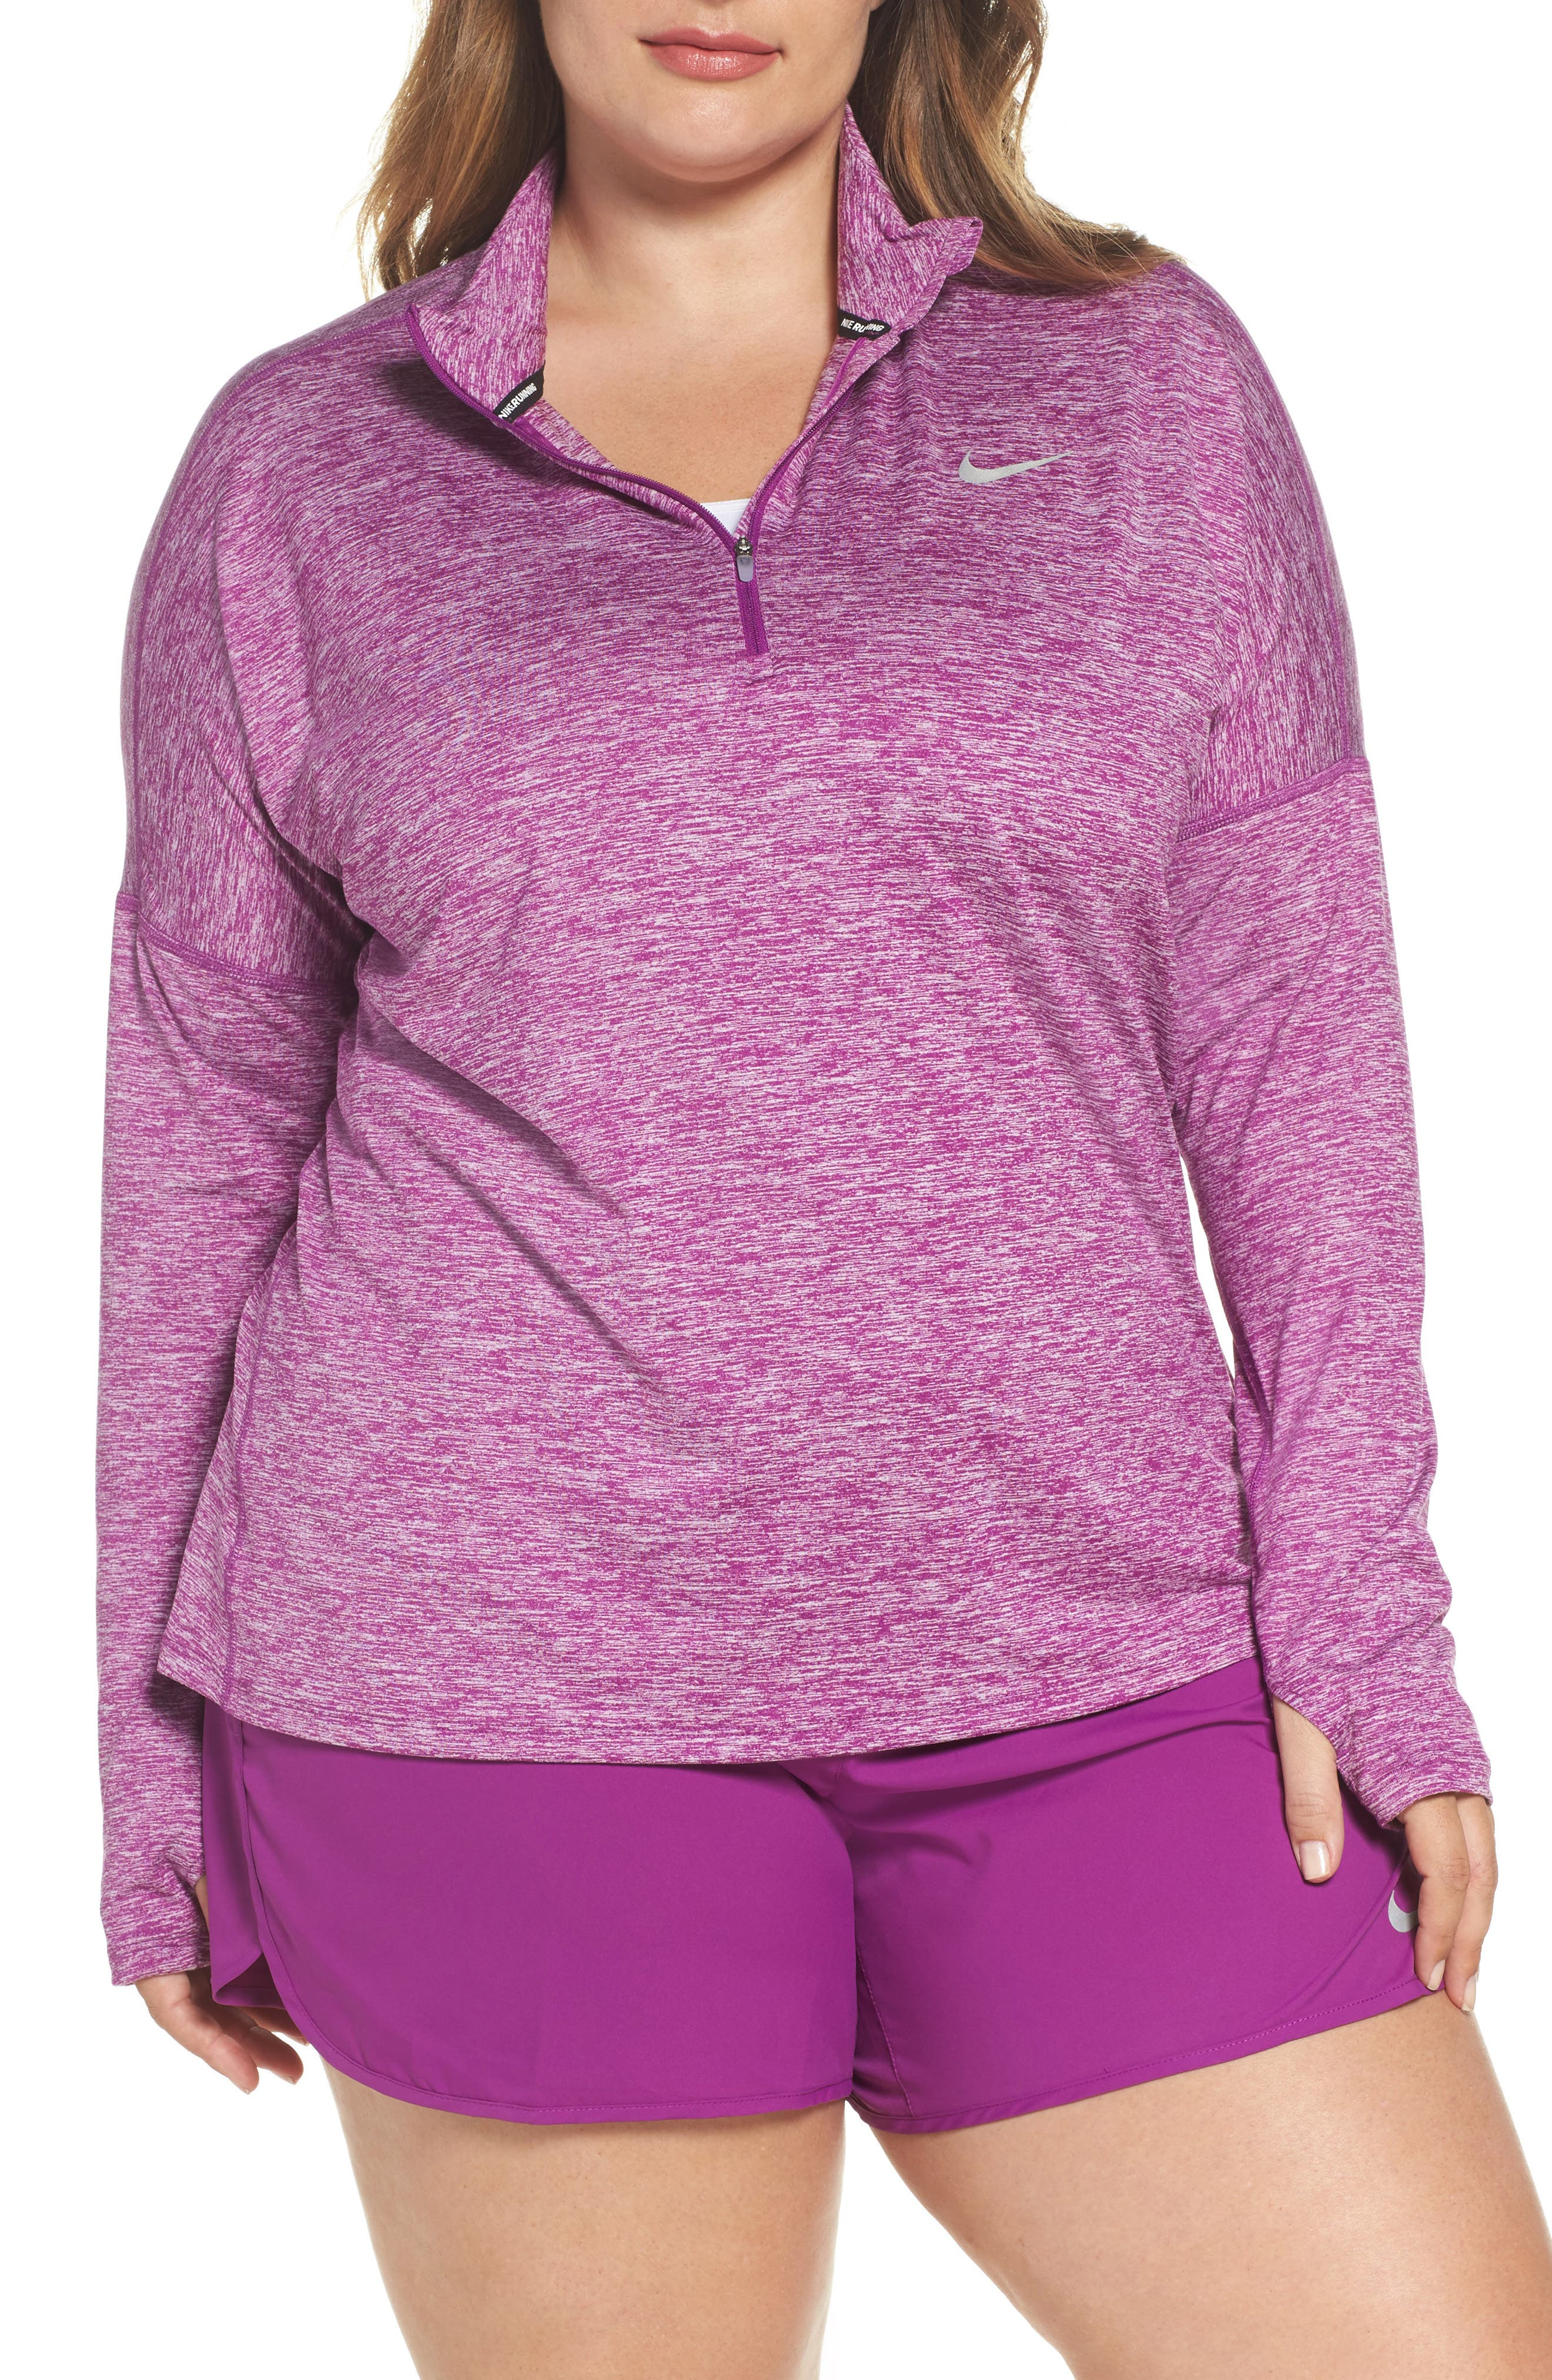 Dry Element Half Zip Top,                             Main thumbnail 1, color,                             Bold Berry/ Heather